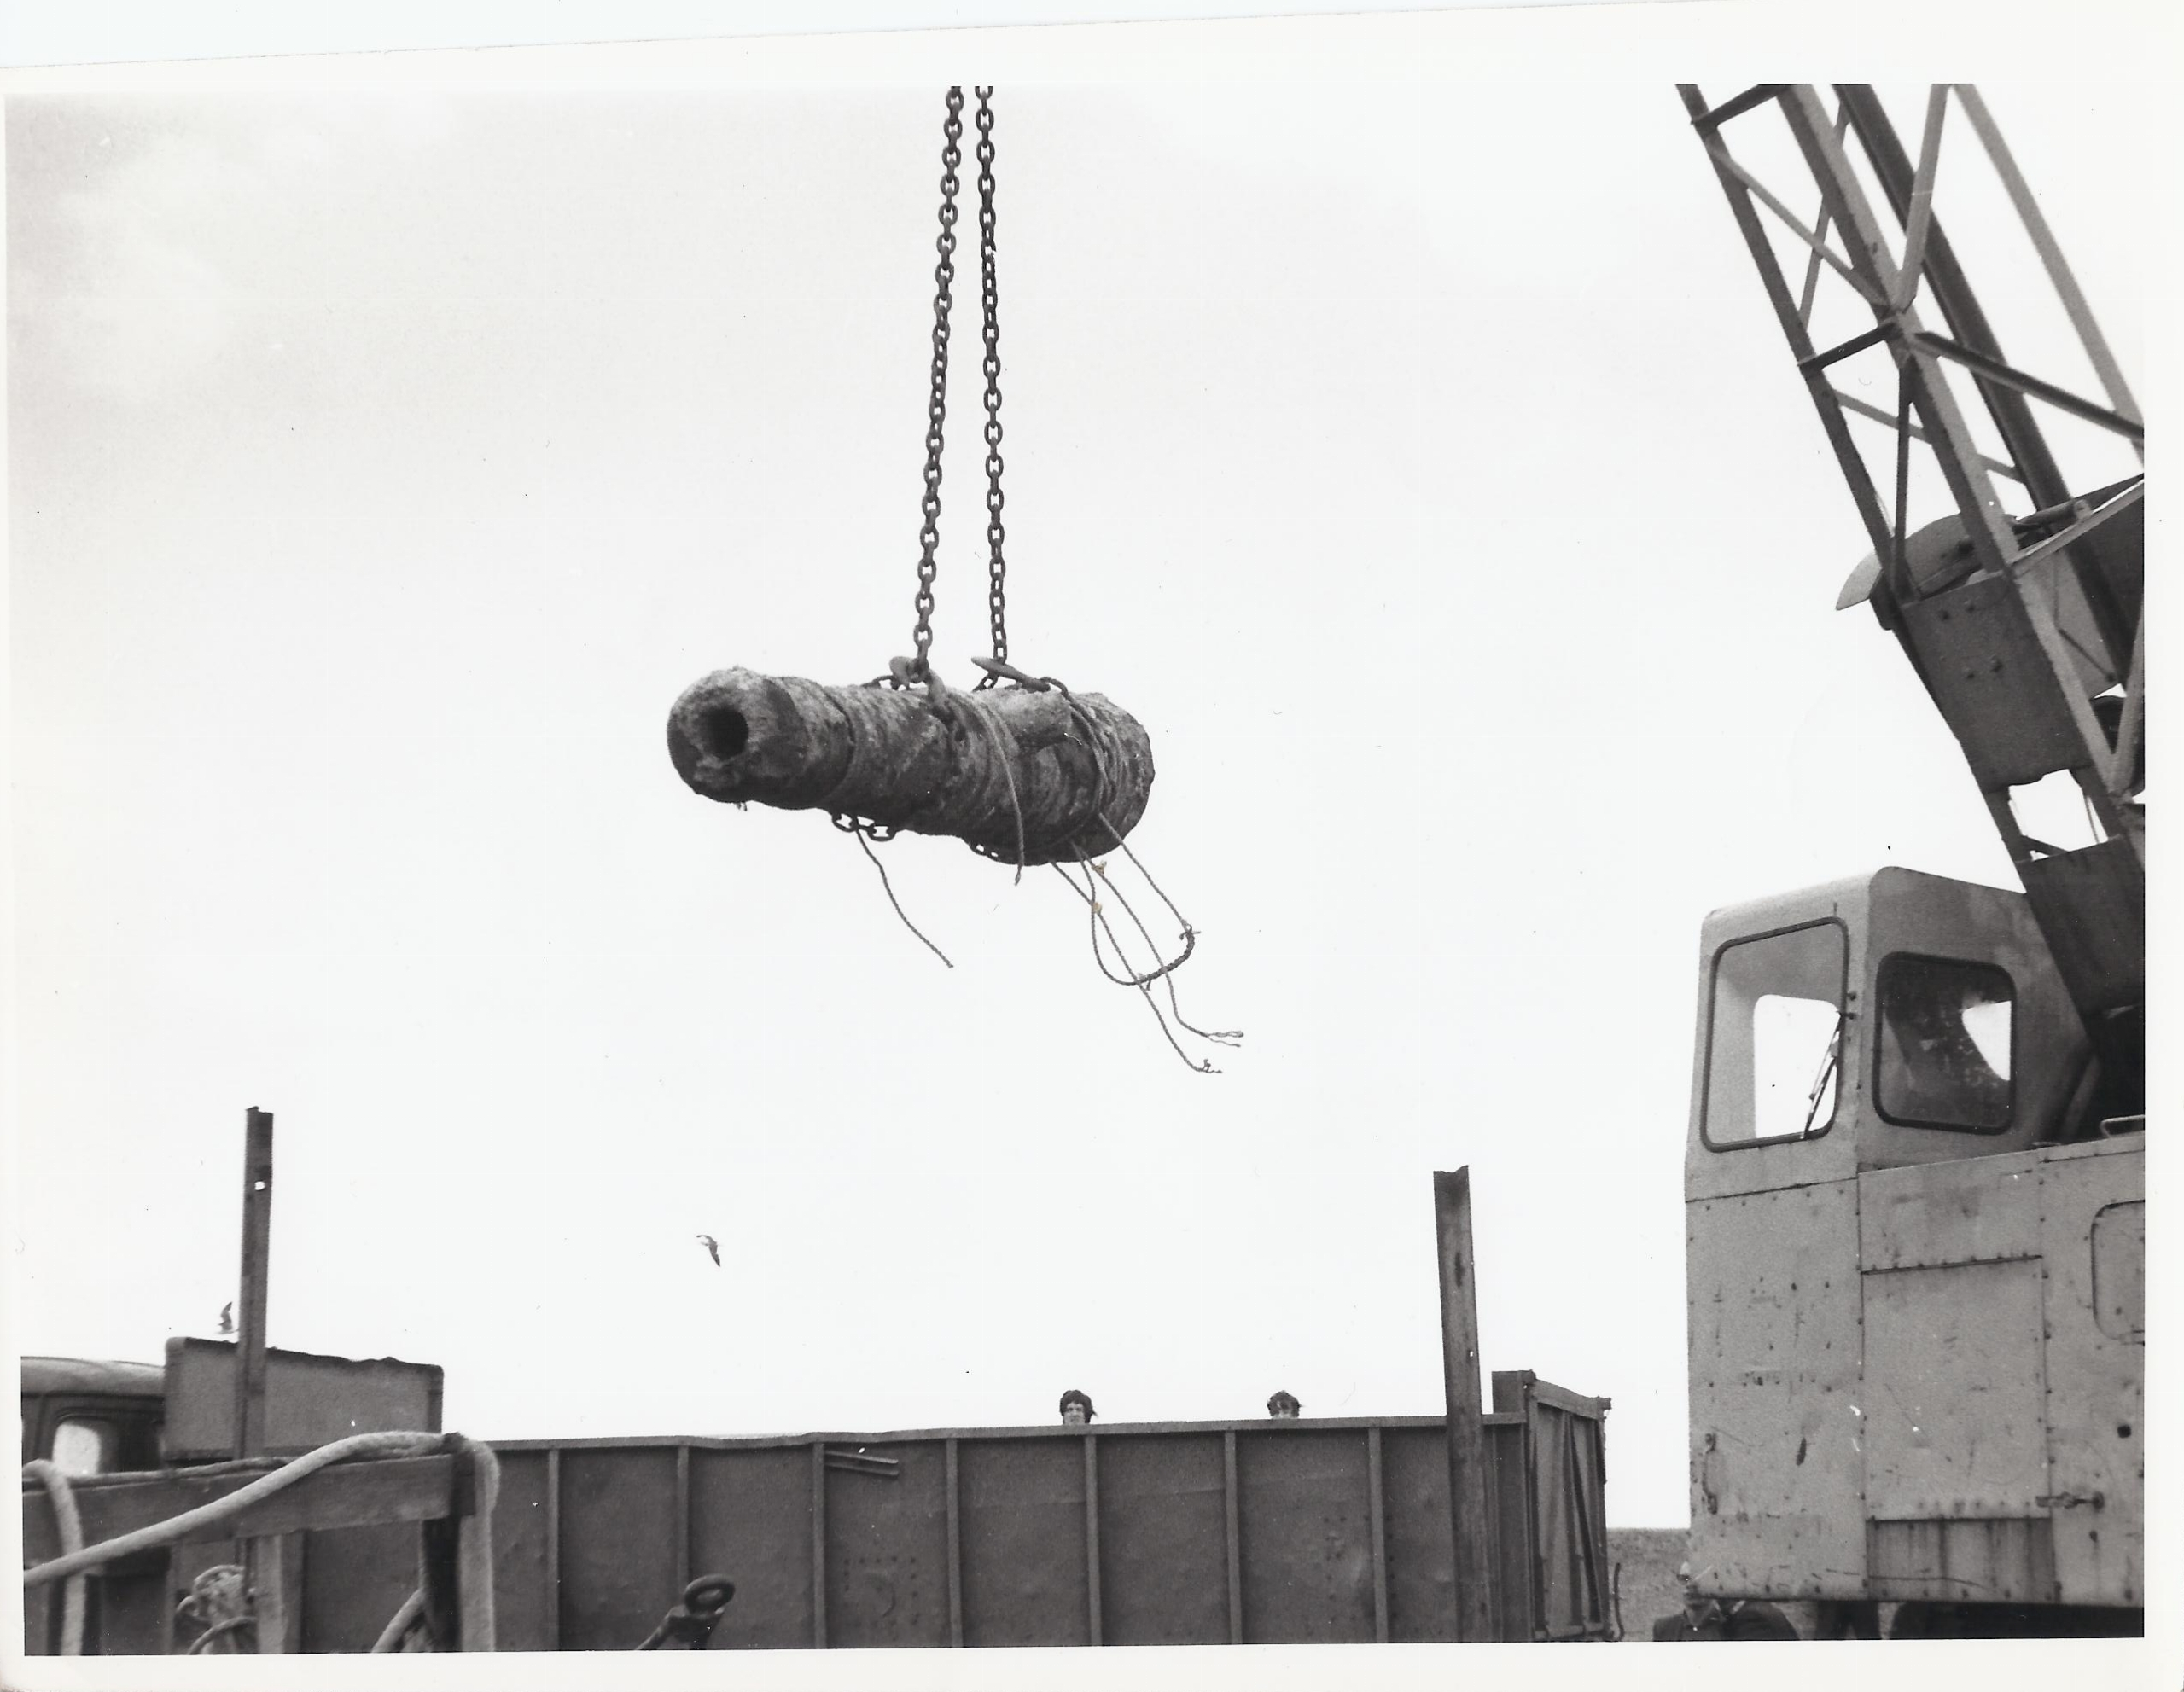 The cannon being lifted